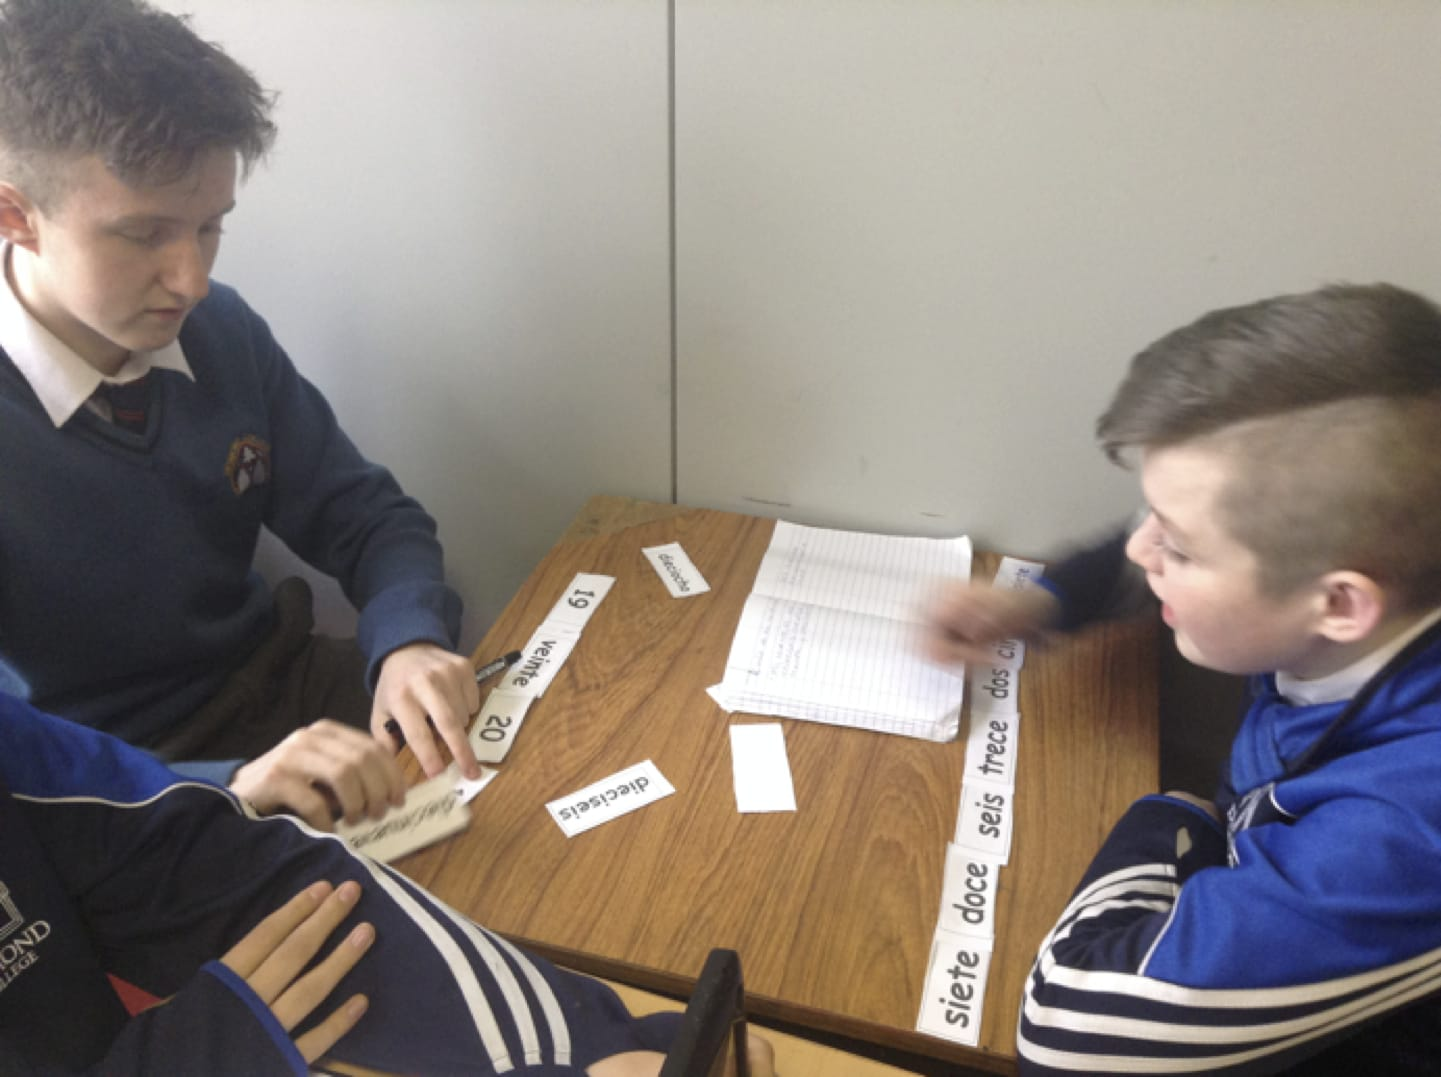 Feb 2017: Desmond College Students taking part in Numeracy activities as part of numeracy week